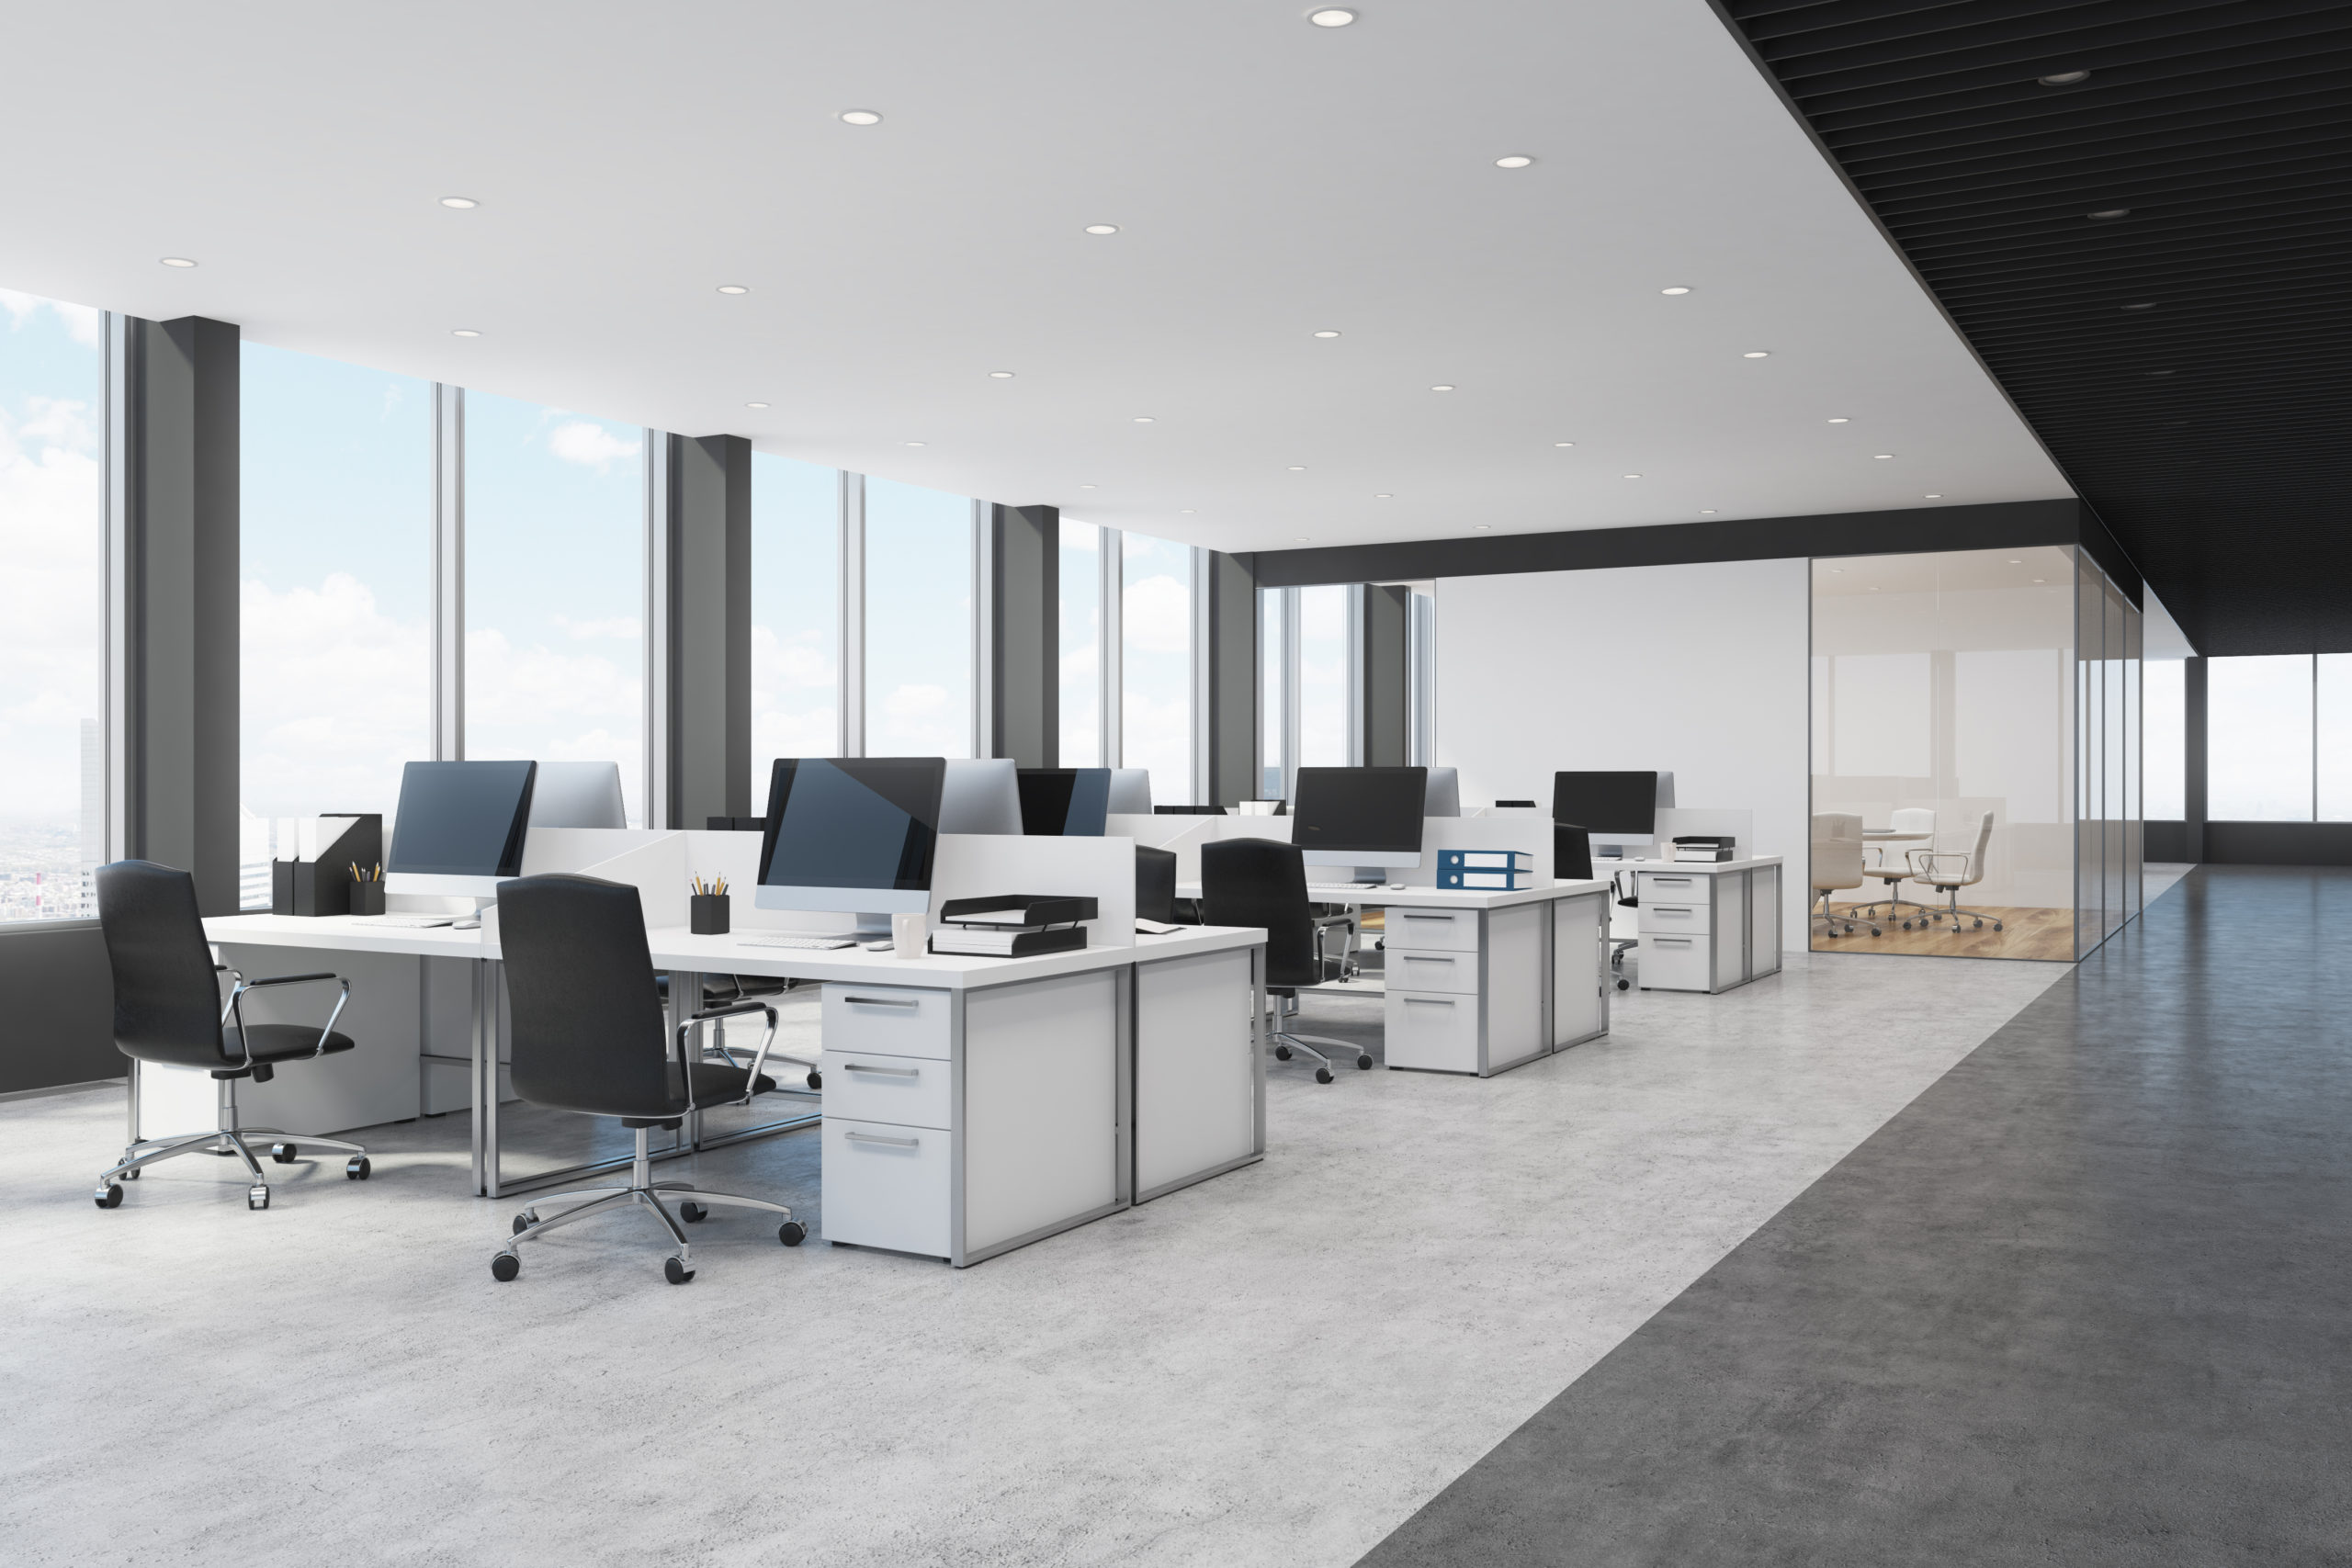 Modern Office with Communal Desk Spaces